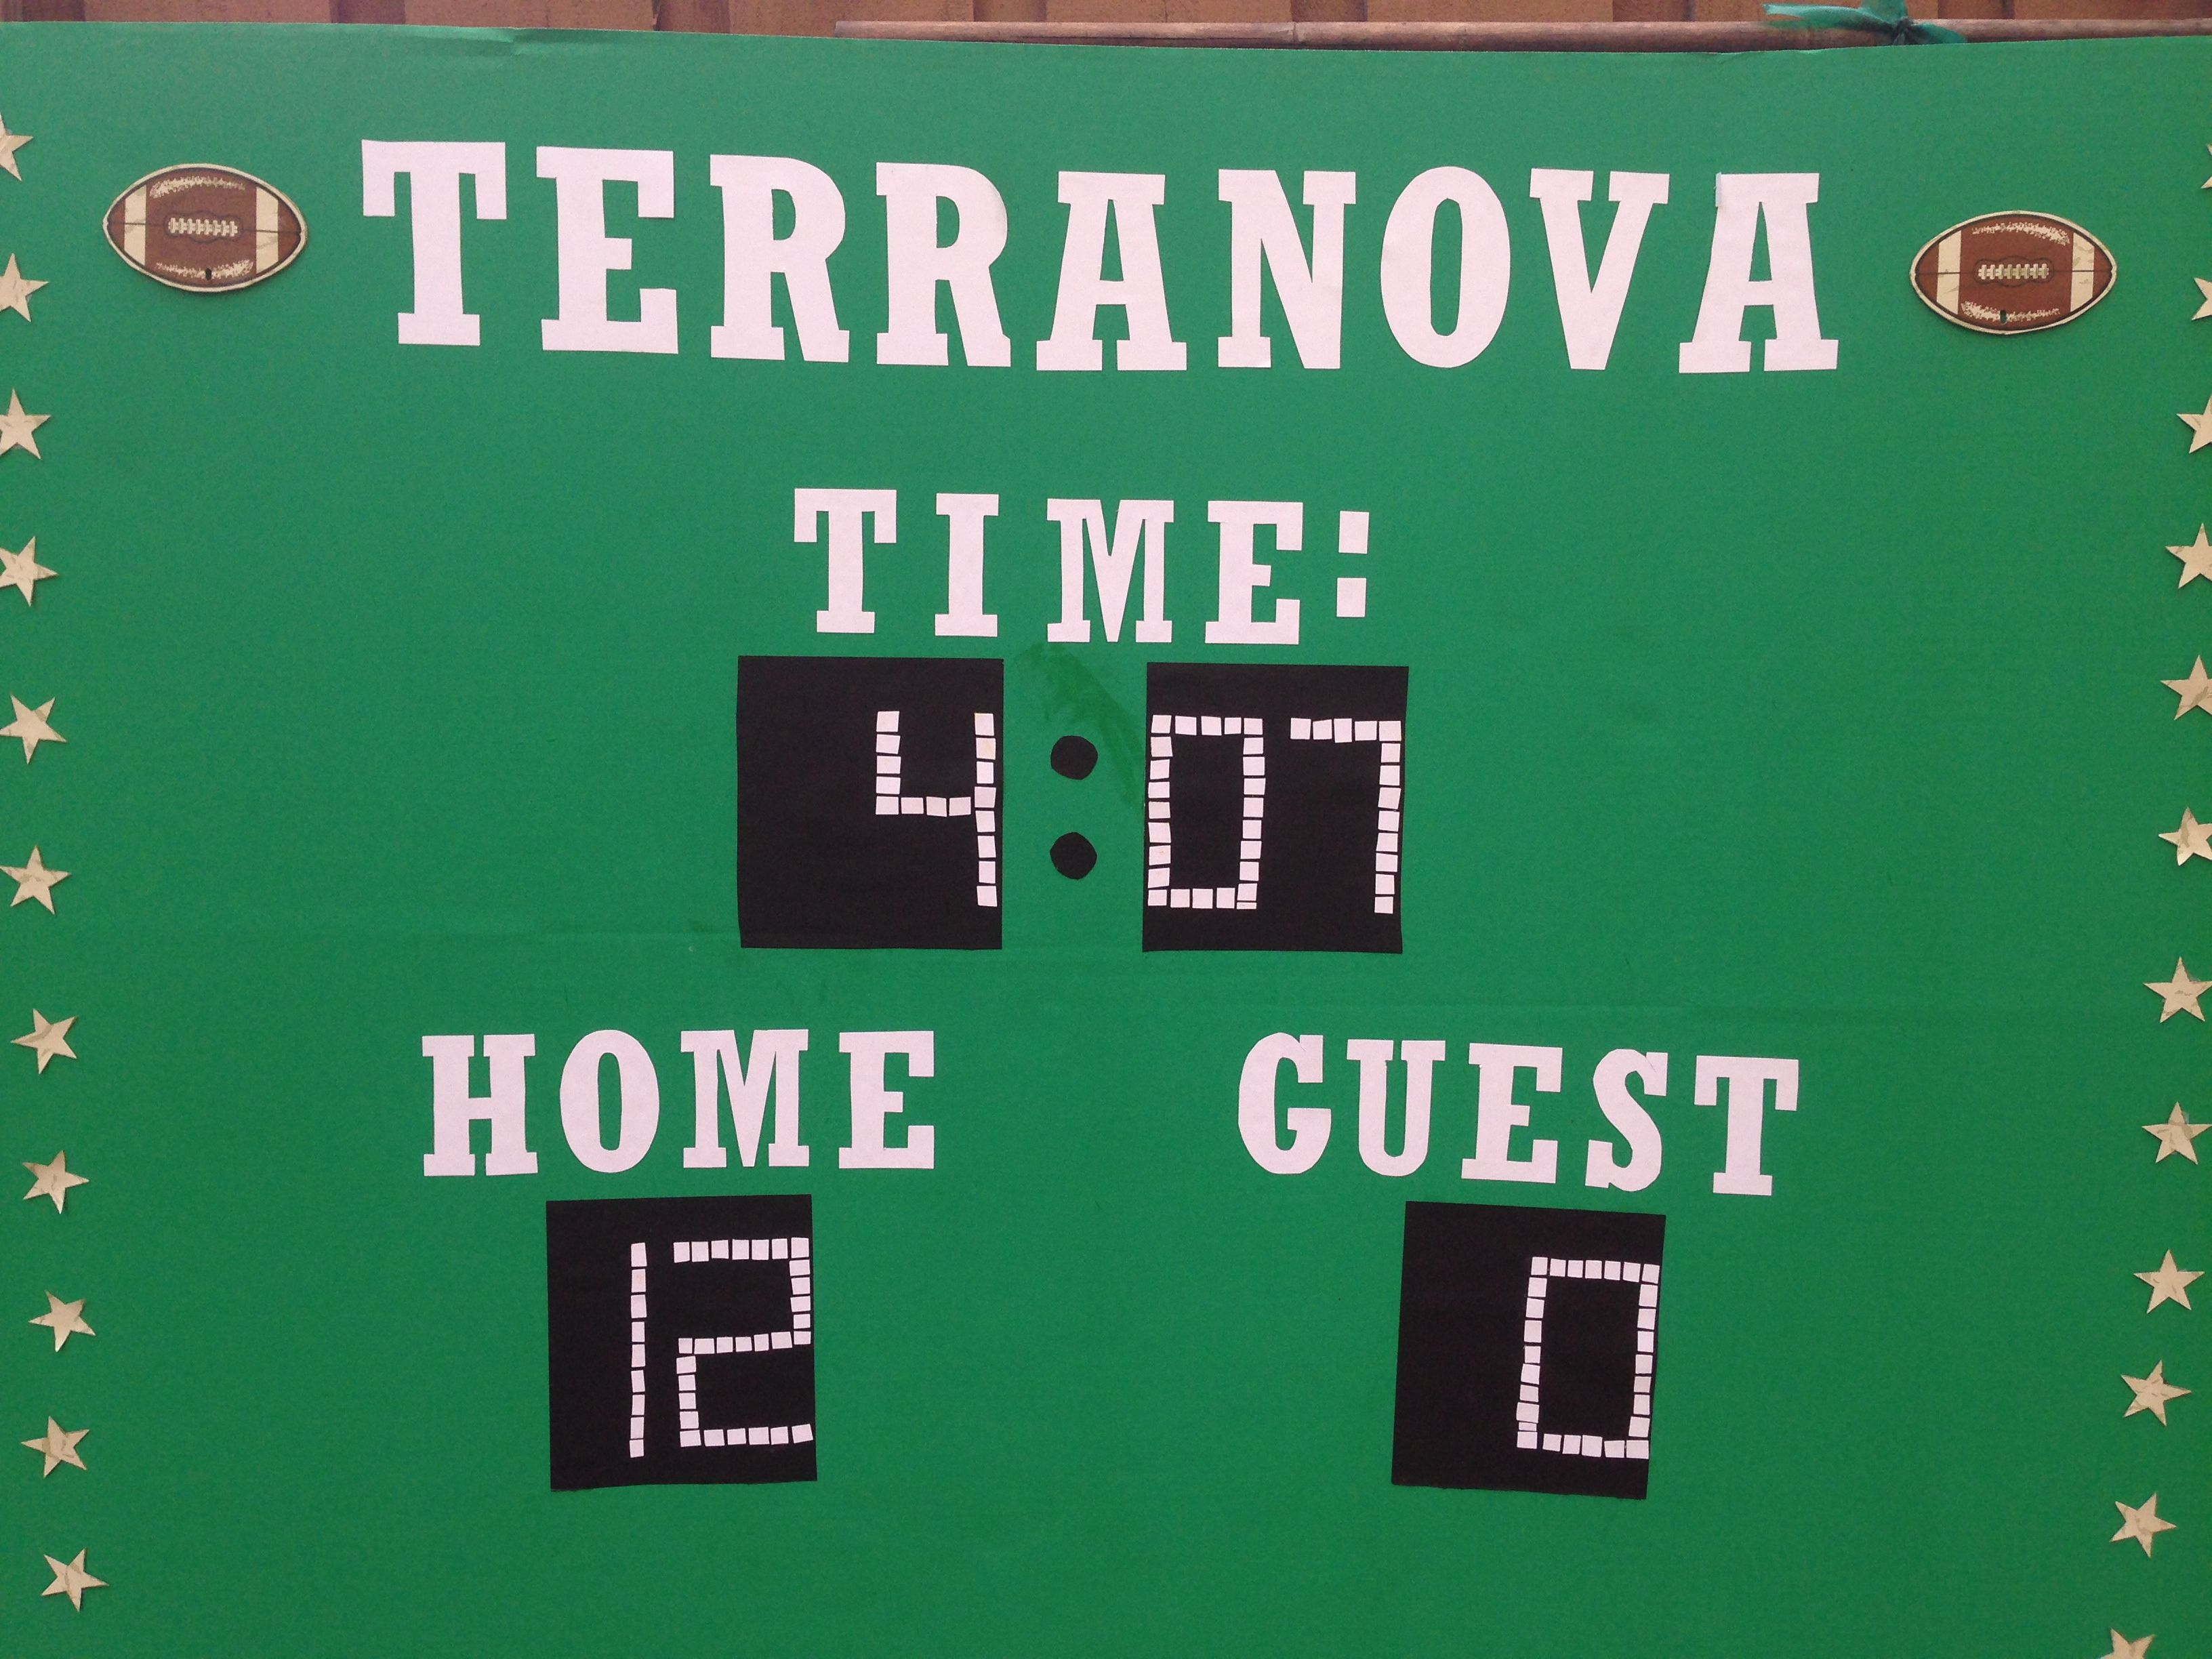 Score Board As A Background For A Sports Theme Party